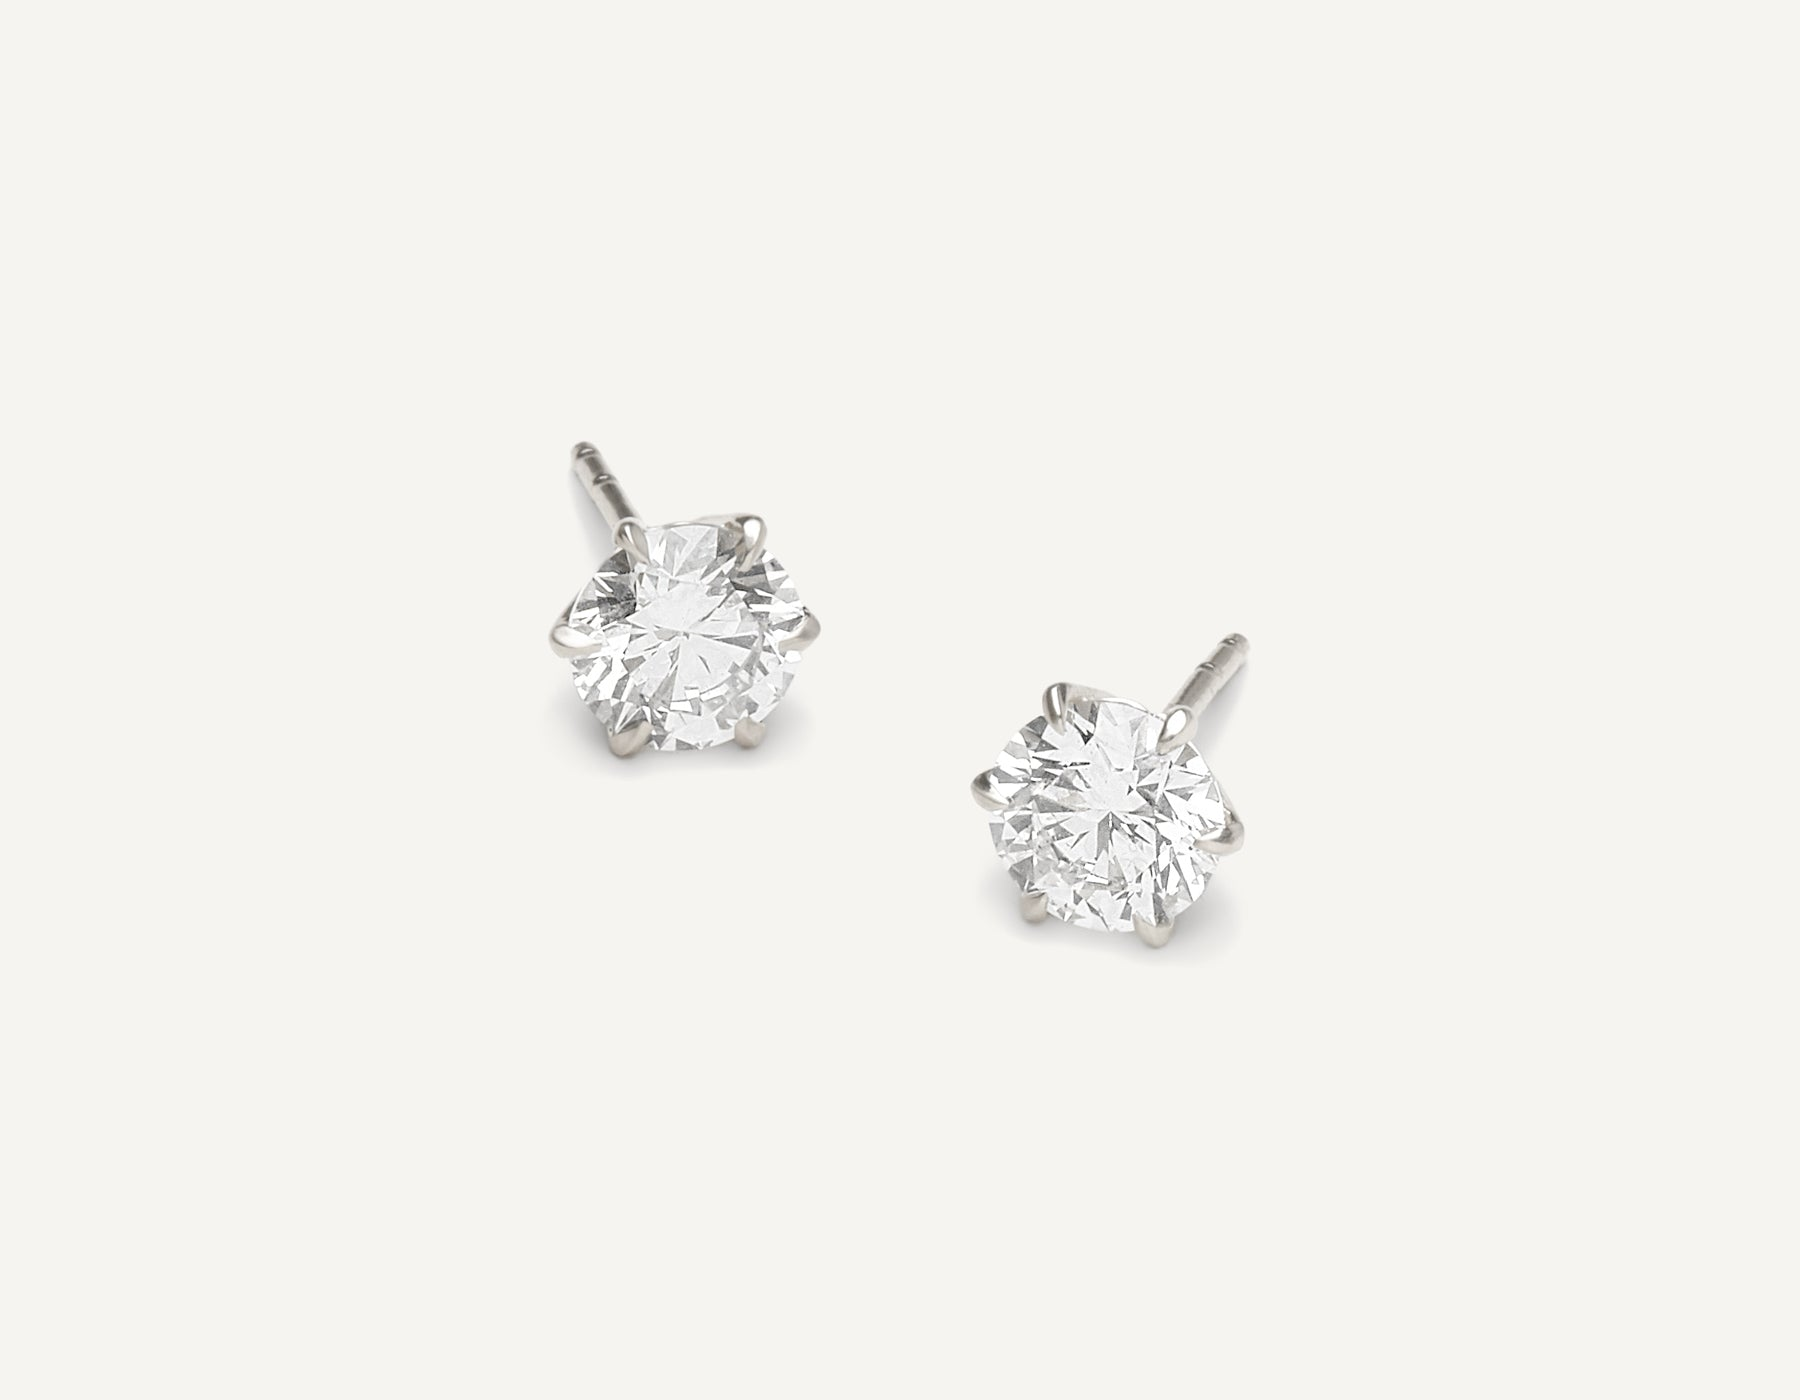 Vrai & oro 1.0 carat Round Brilliant Diamond stud earring 18k solid gold simple modern, 18K White Gold